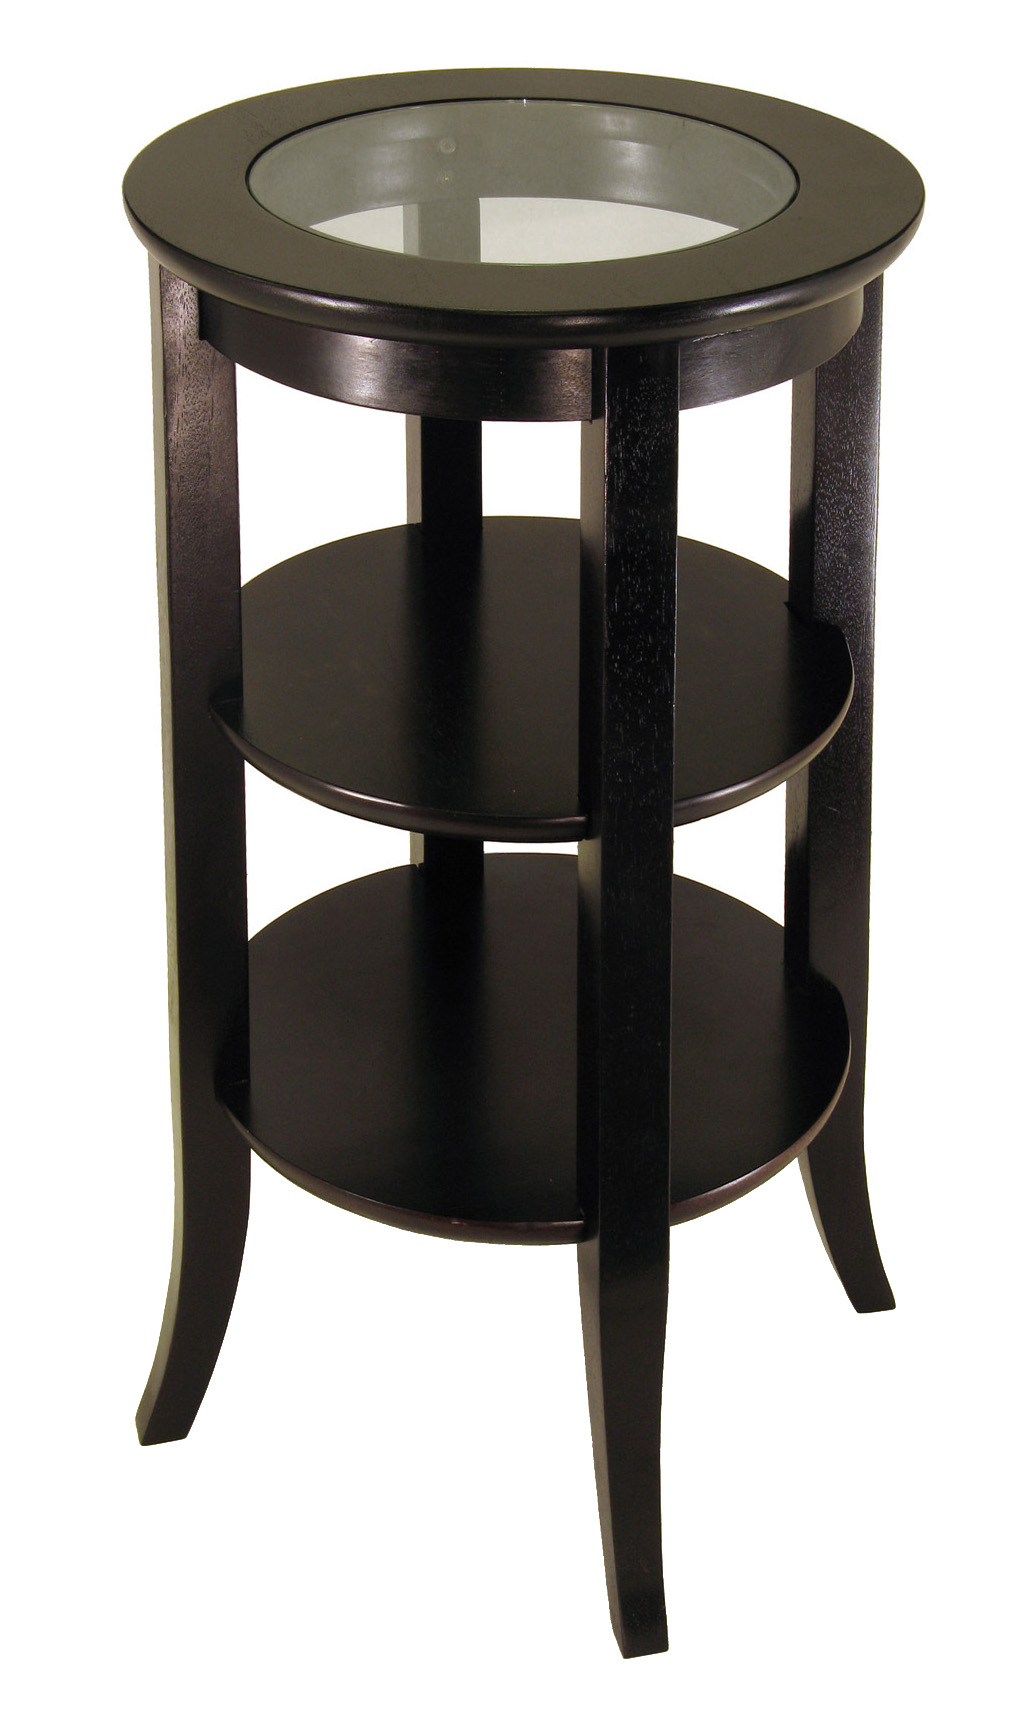 winsome sasha round accent table cappucino black genoa inset glass two shelves white marble top dining high patio with umbrella antique brass bar height drum coffee beach house